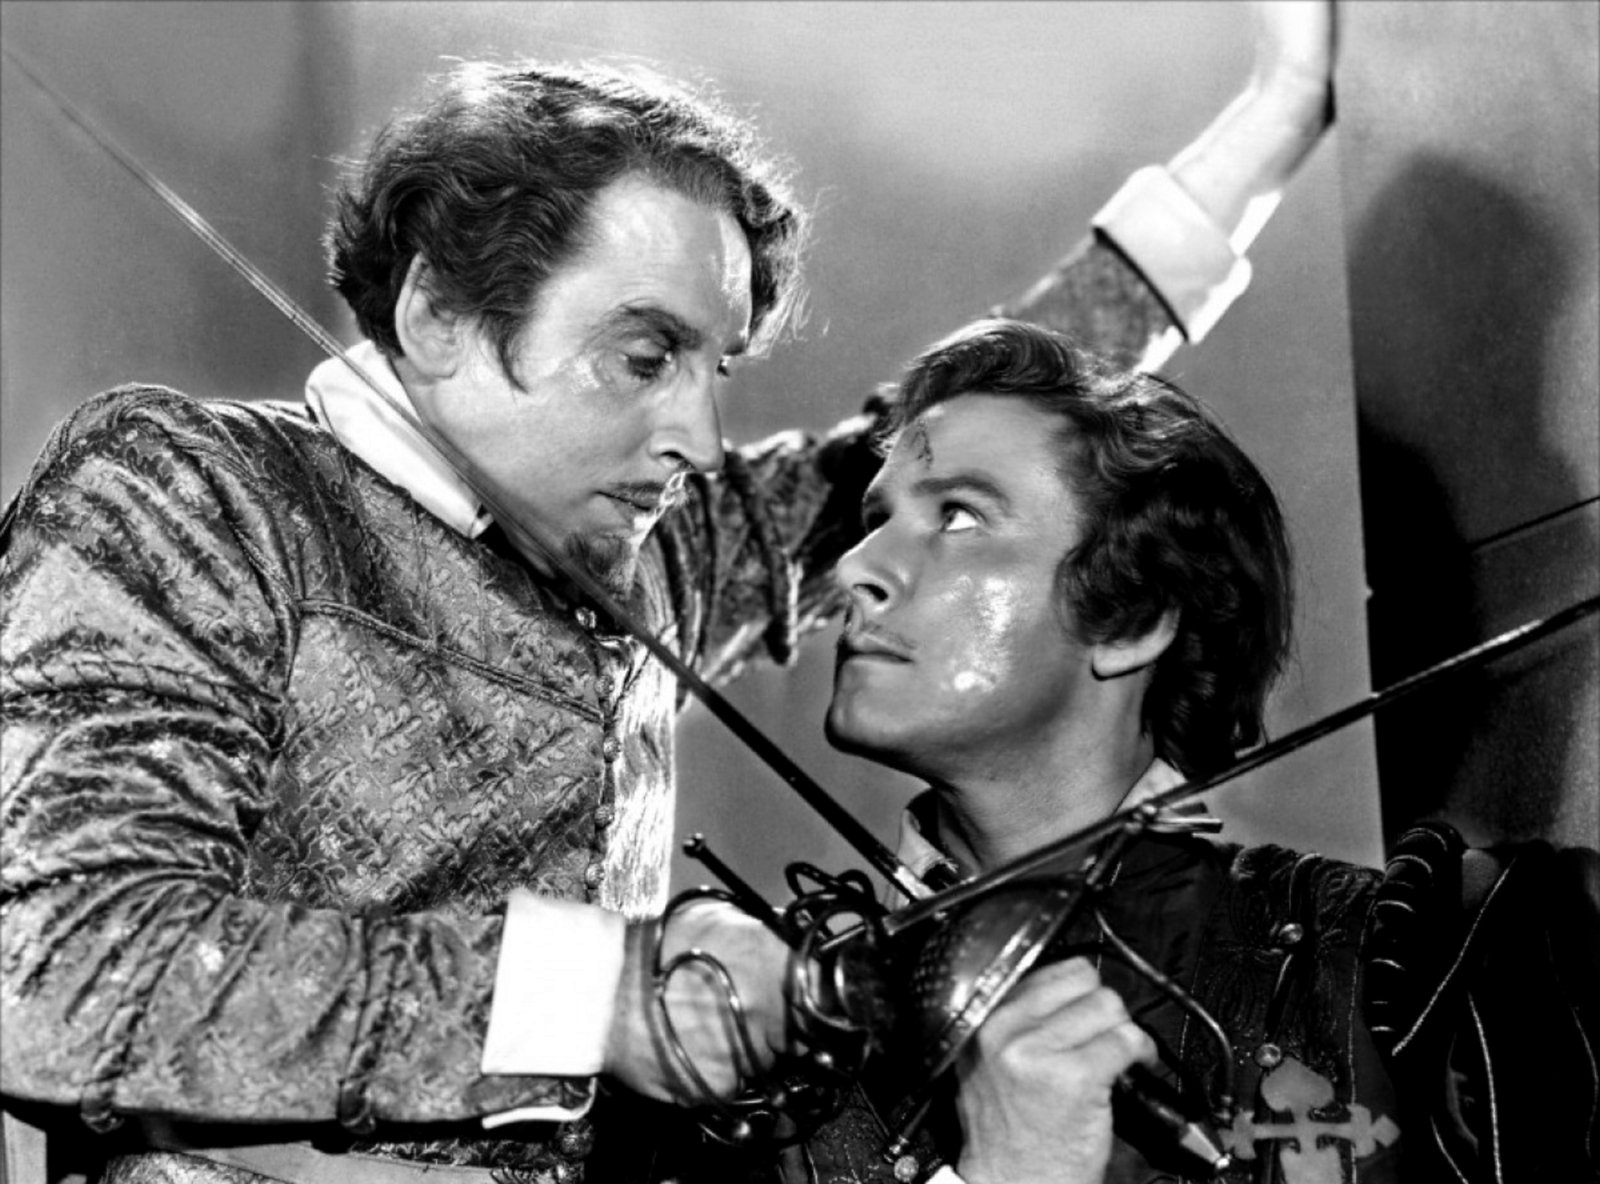 Traitorous Lord Wolfingham (Henry Daniell) crosses swords with English privateer Geoffrey Thorpe (Errol Flynn), captain of the Albatross.